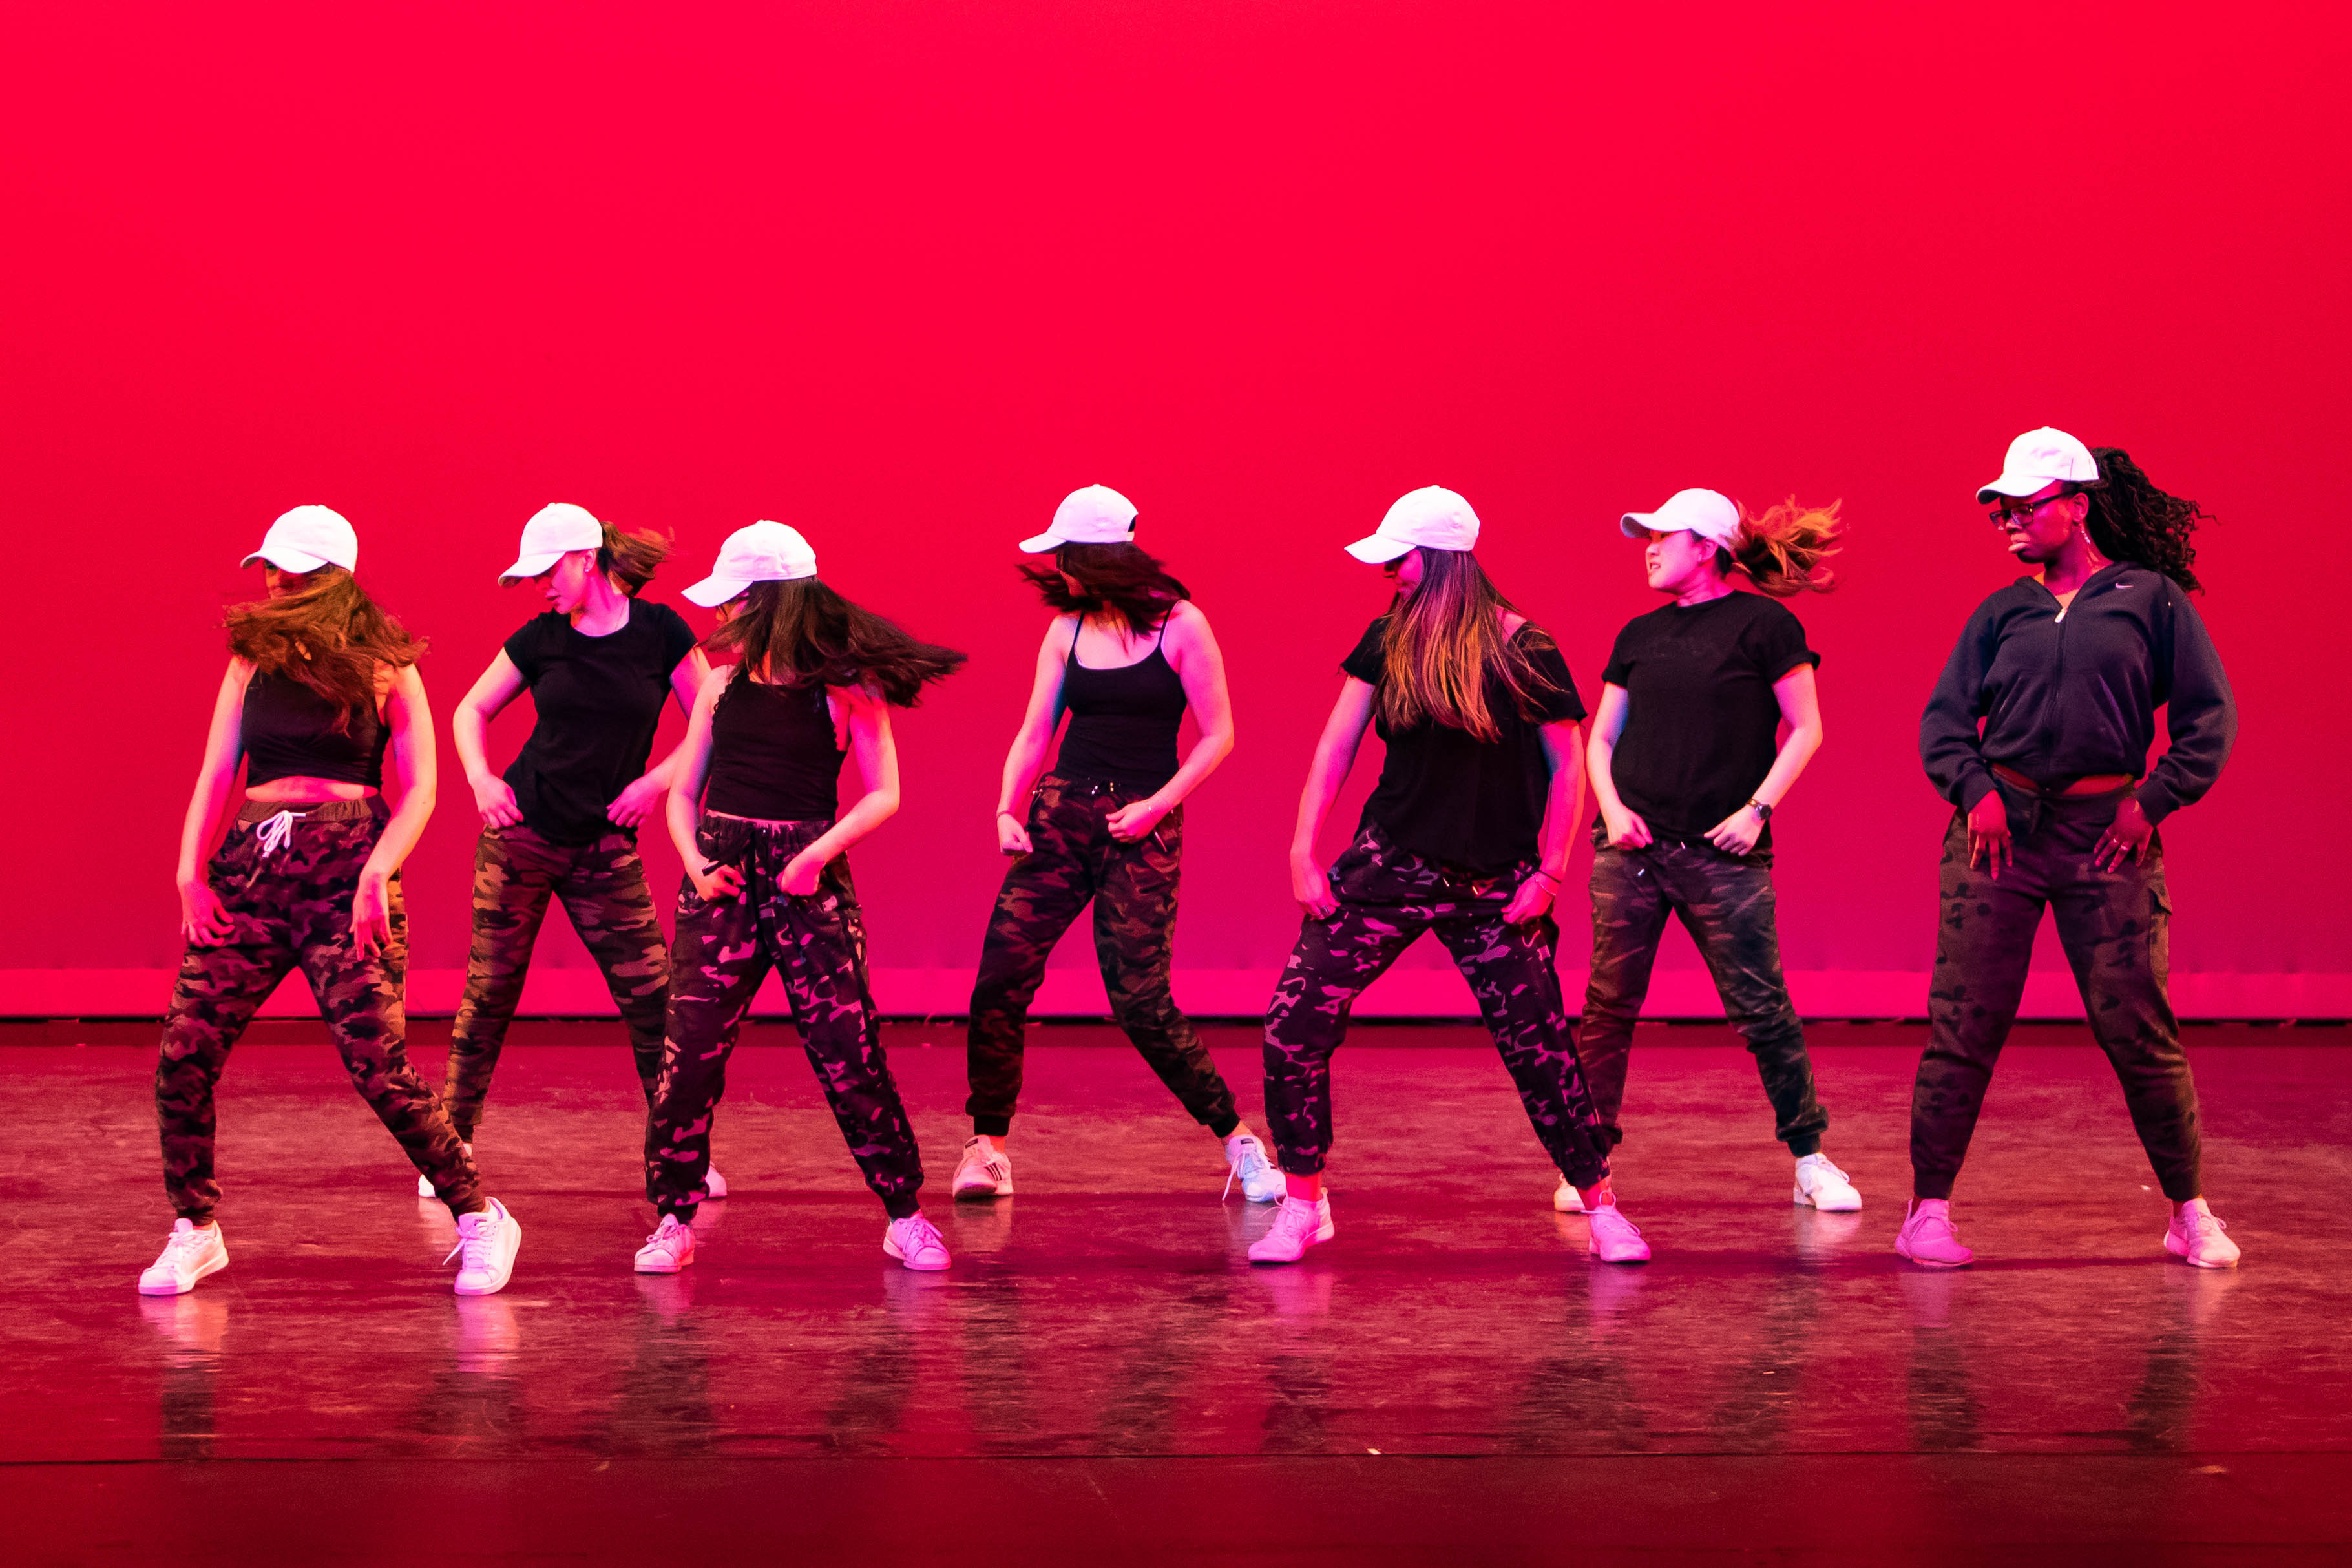 High Energy Hip Hop Routines Reign At Dance Showcase The Heights